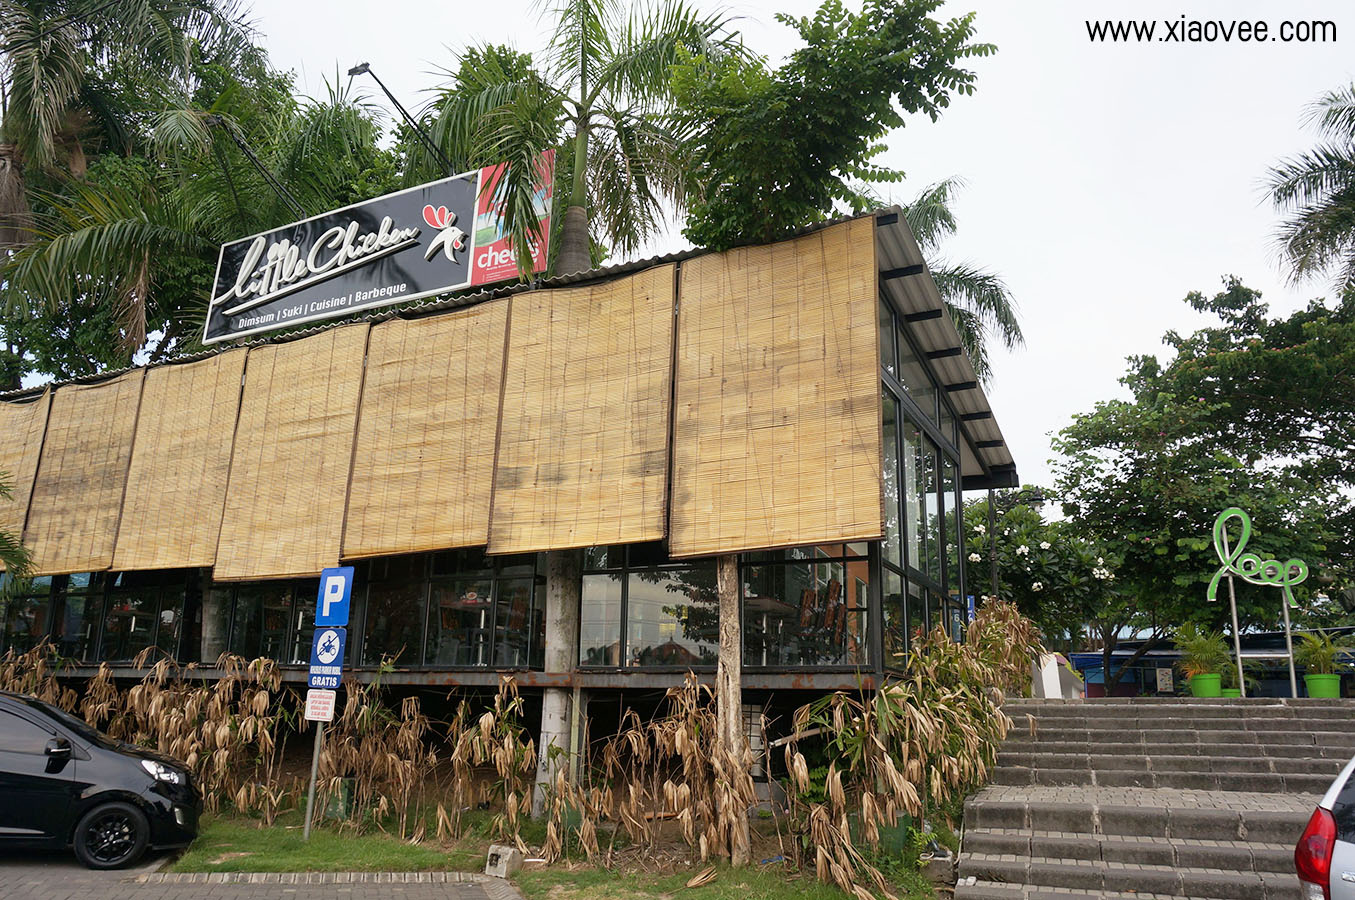 Review of Little Chicken Restaurant at Loop Surabaya. Little Chicken has specializations in Dimsum, Suki, Cuisine and Barbeque as their favorite menu